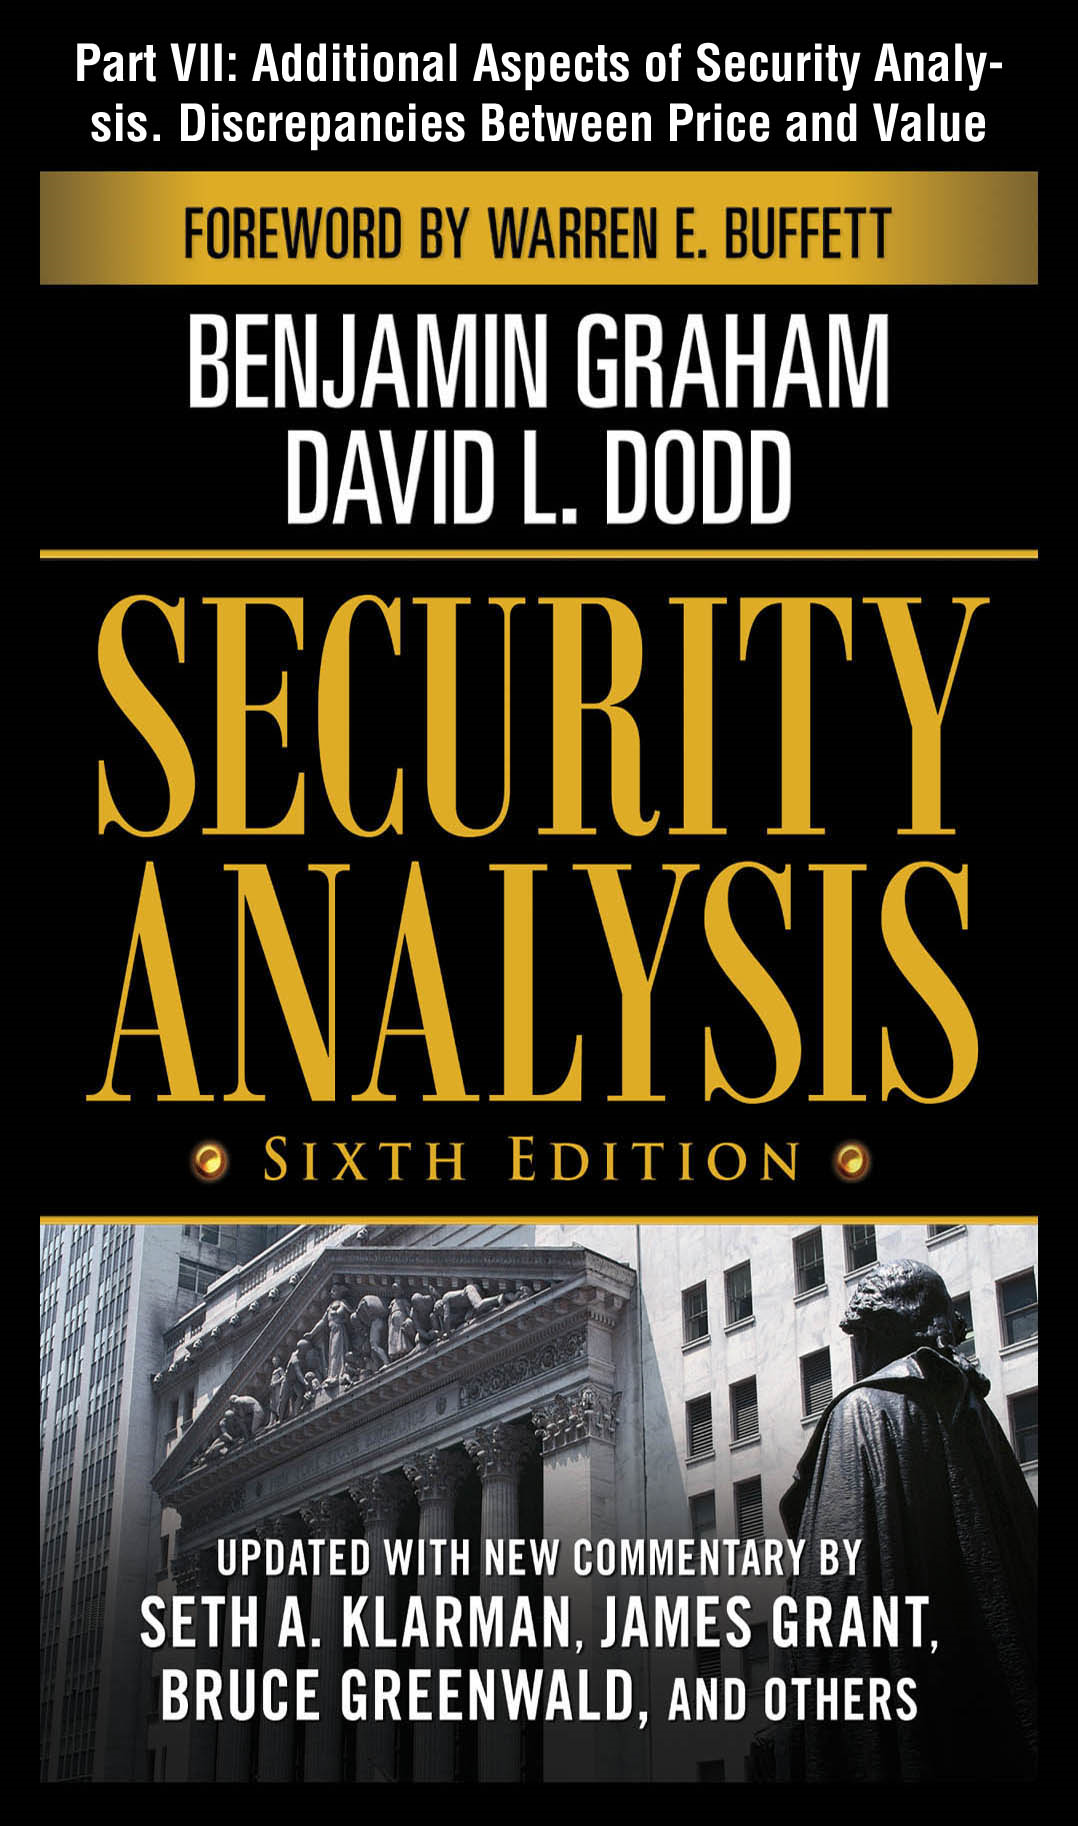 Security Analysis, Sixth Edition, Part VII - Additional Aspects of Security Analysis. Discrepancies Between Price and Value